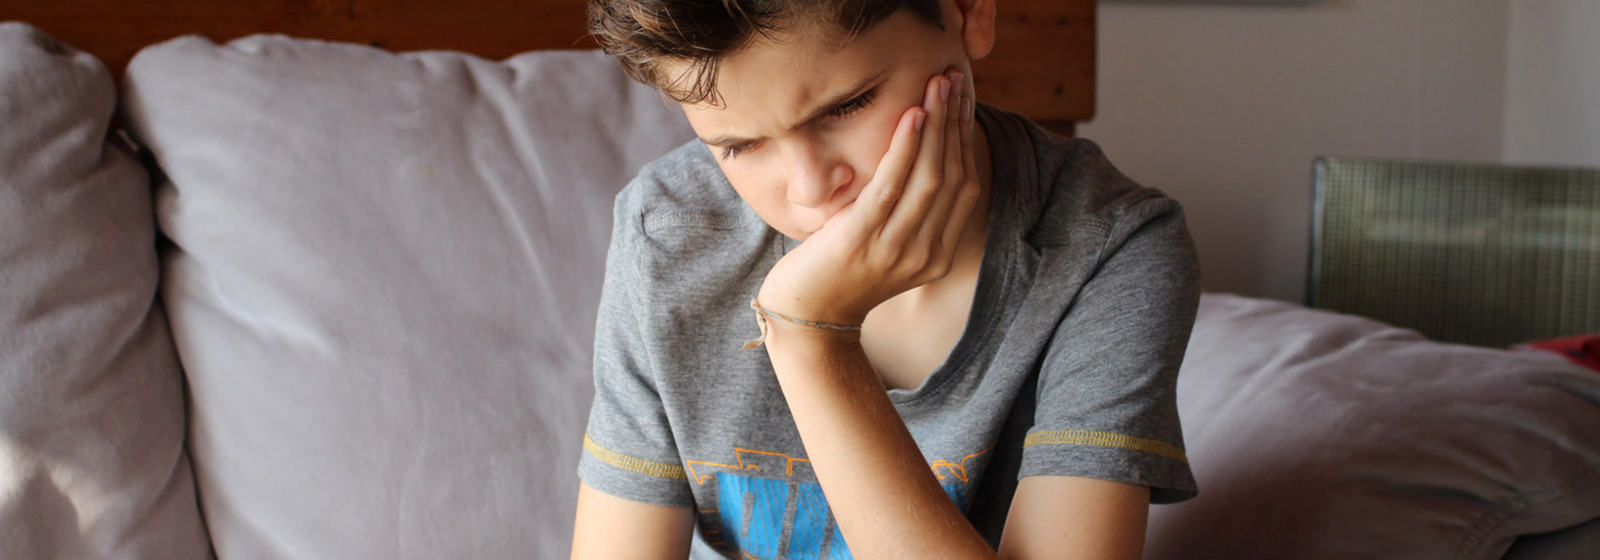 Picture of boy with head resting in his hand looking sad